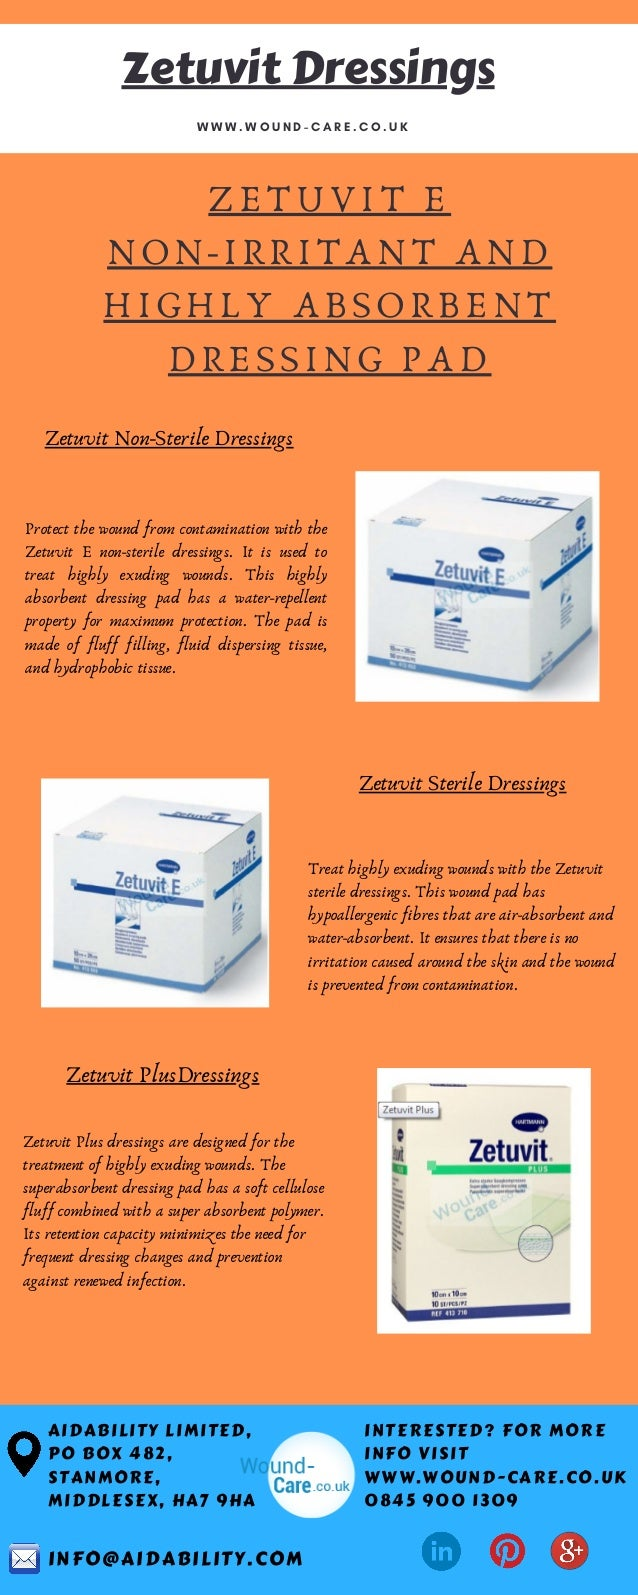 ZETUVIT E NON-IRRITANT AND HIGHLY ABSORBENT DRESSING PAD AIDABILITY LIMITED, PO BOX 482, STANMORE, MIDDLESEX, HA7 9HA W W ...